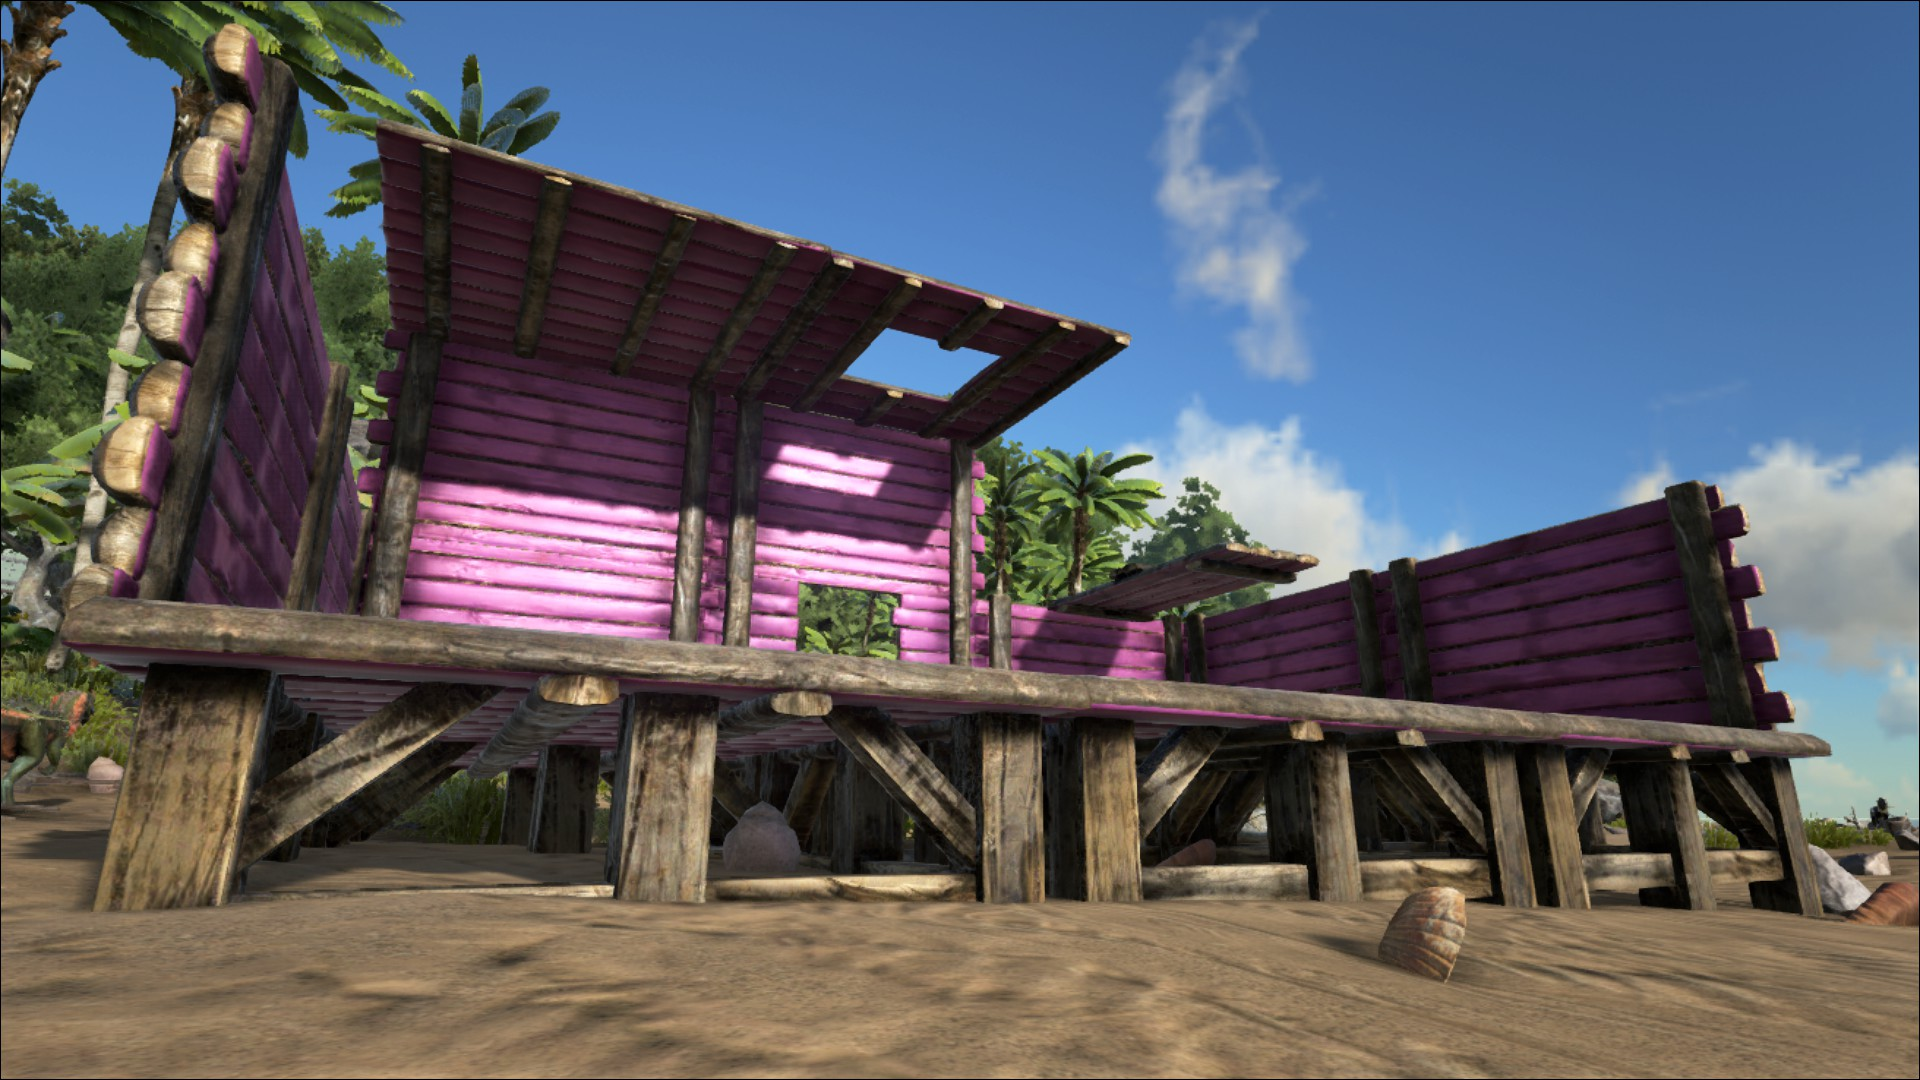 Wood Ark Survival Wooden Foundation Official Ark Survival Evolved Wiki. Wood  Ark Survival   Wooden Foundation Official Ark Survival Evolved ...